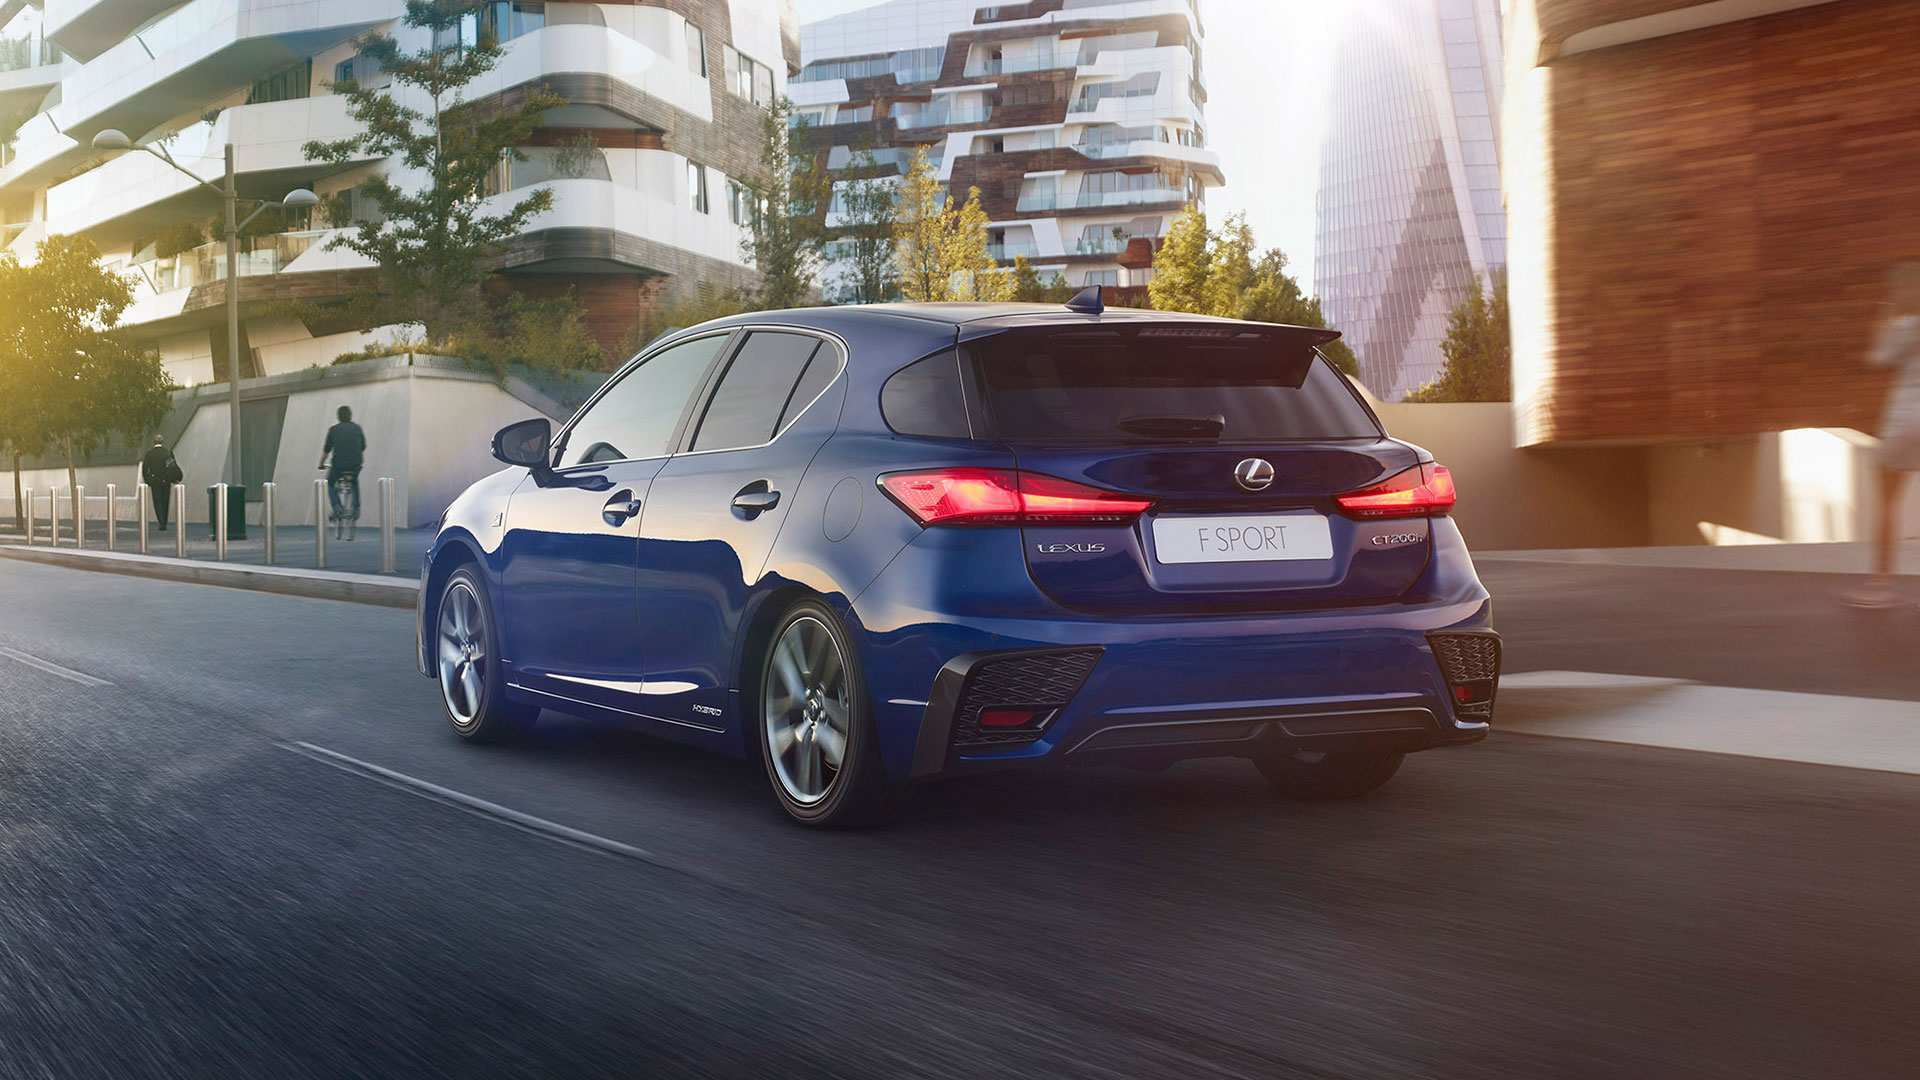 58 The Best Lexus Ct 2019 Price Design And Review